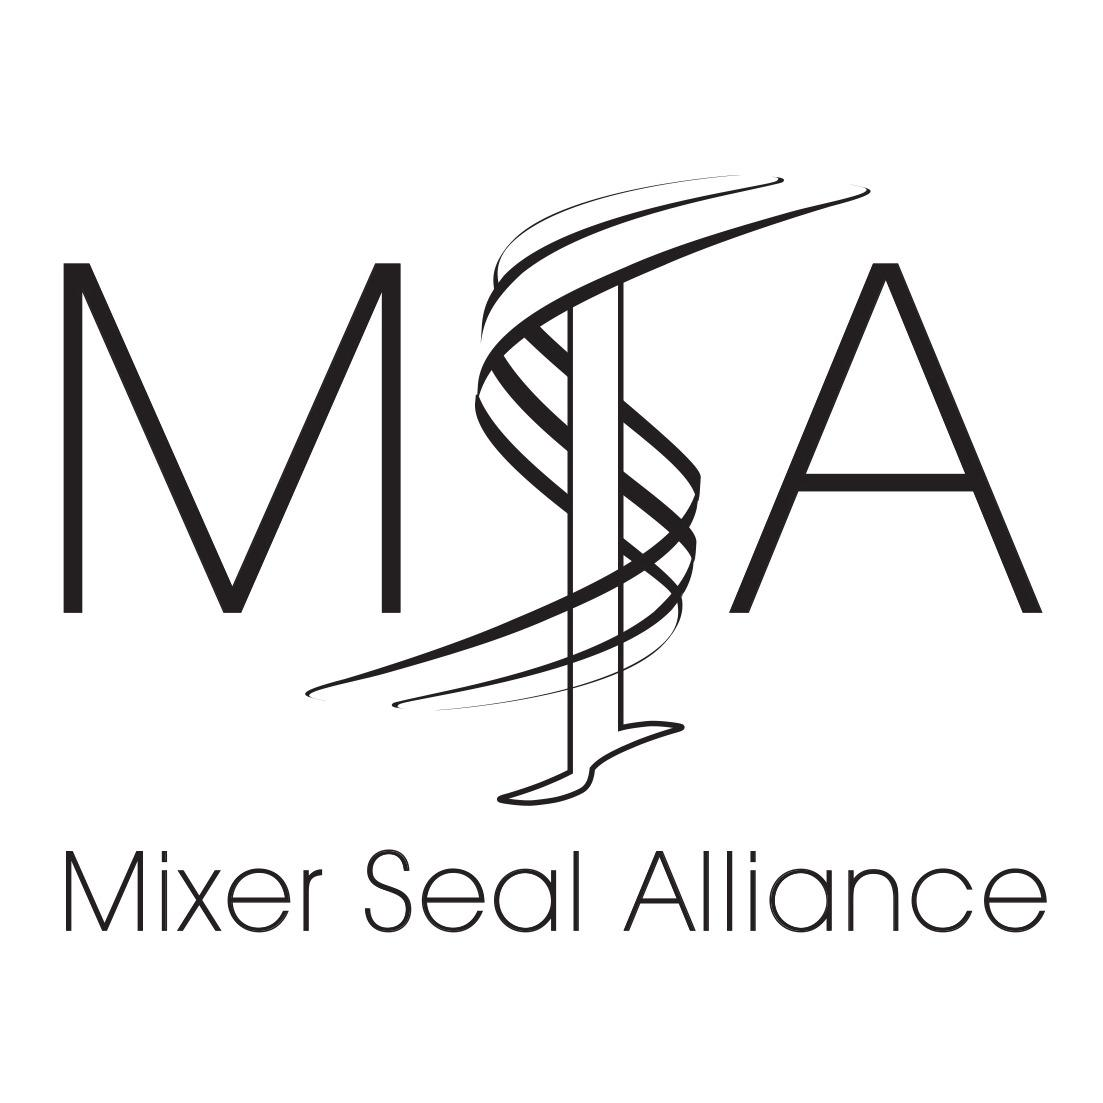 Mixer Seal Alliance (MSA)